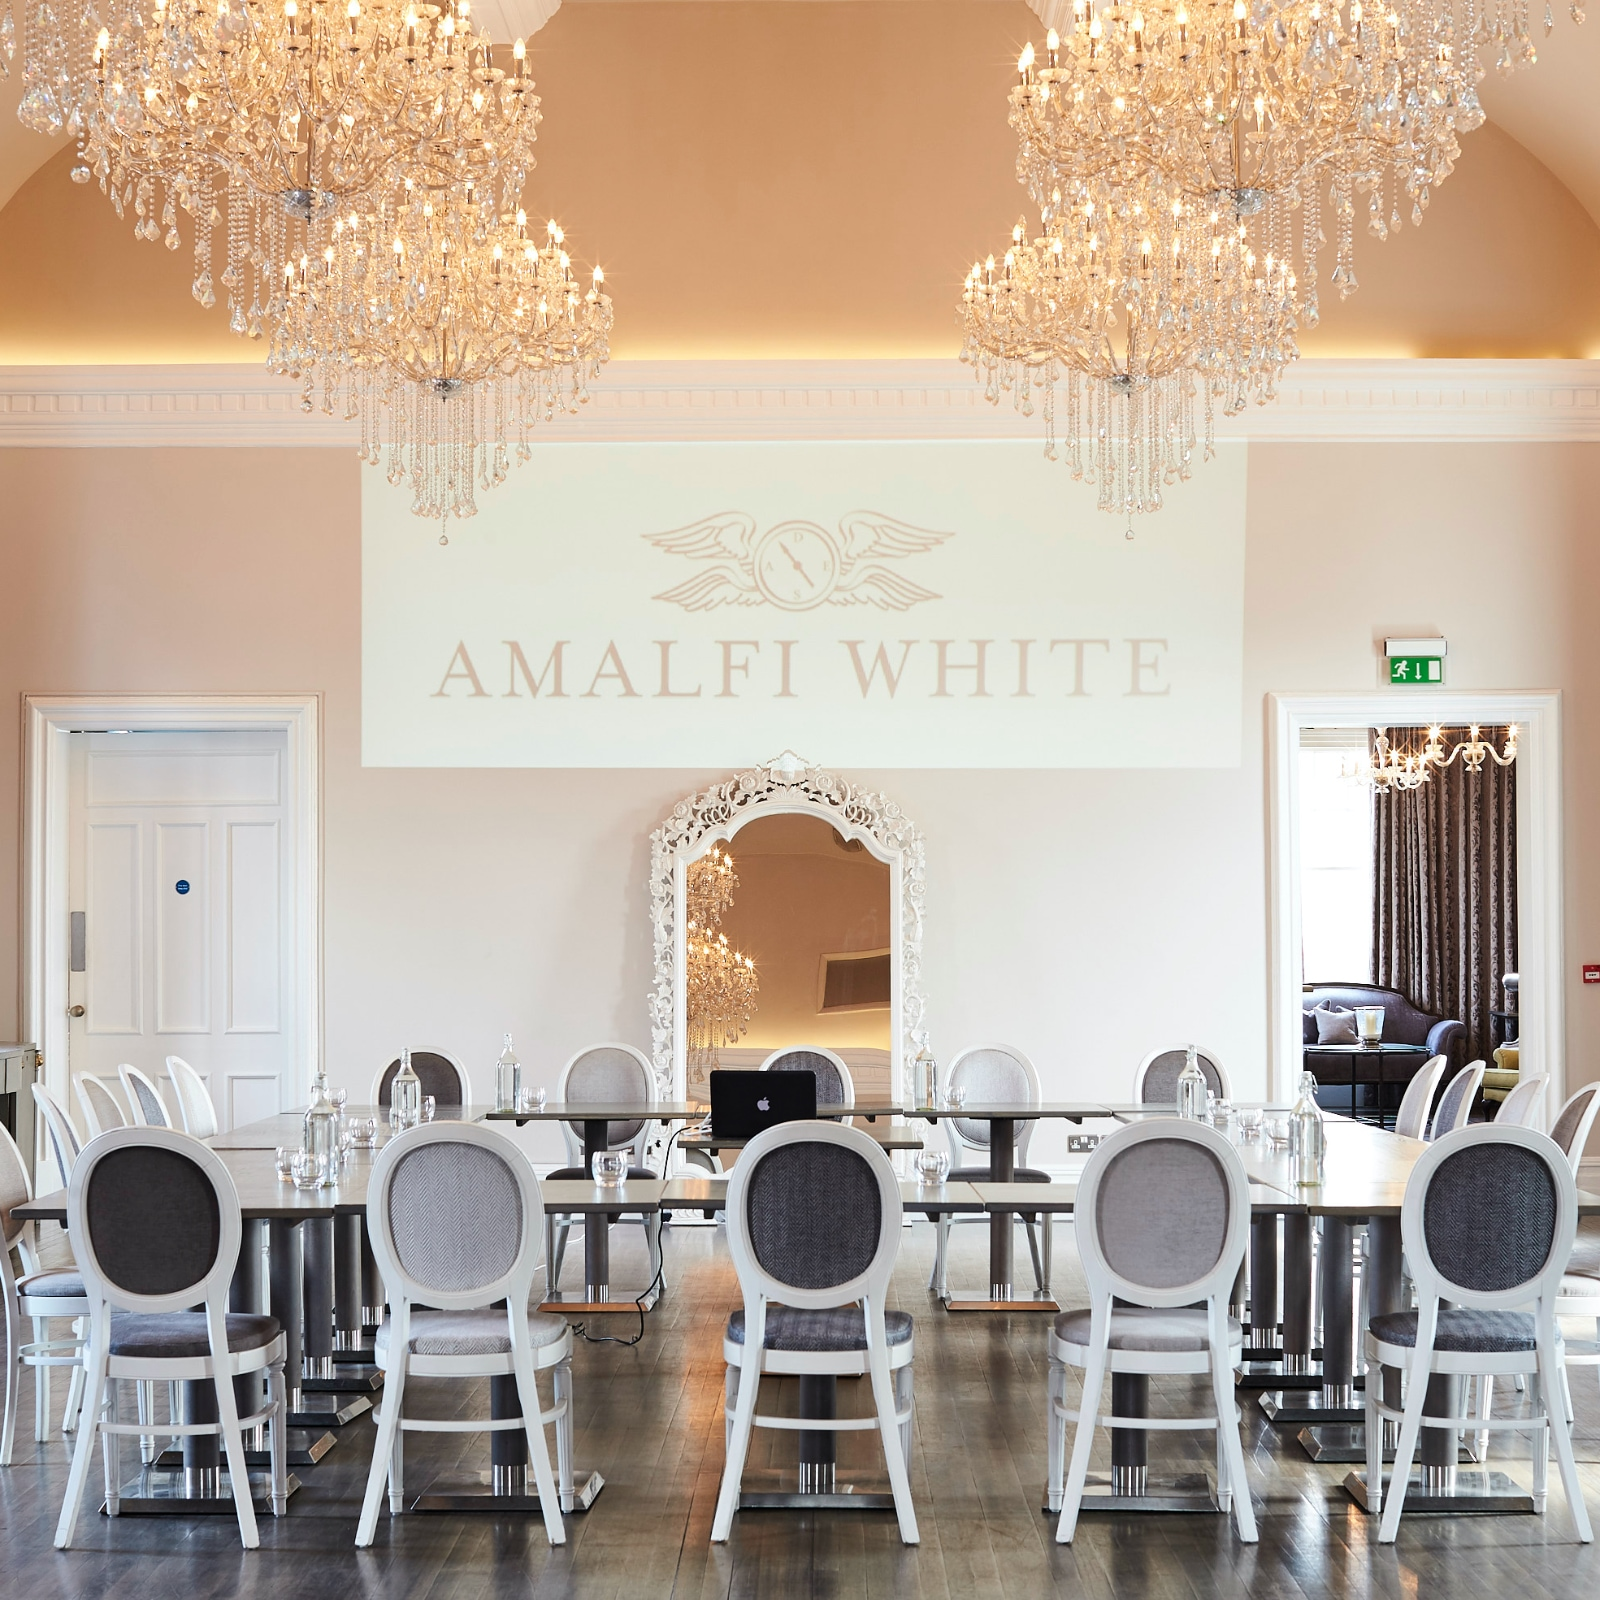 Business conferences held at Amalfi White